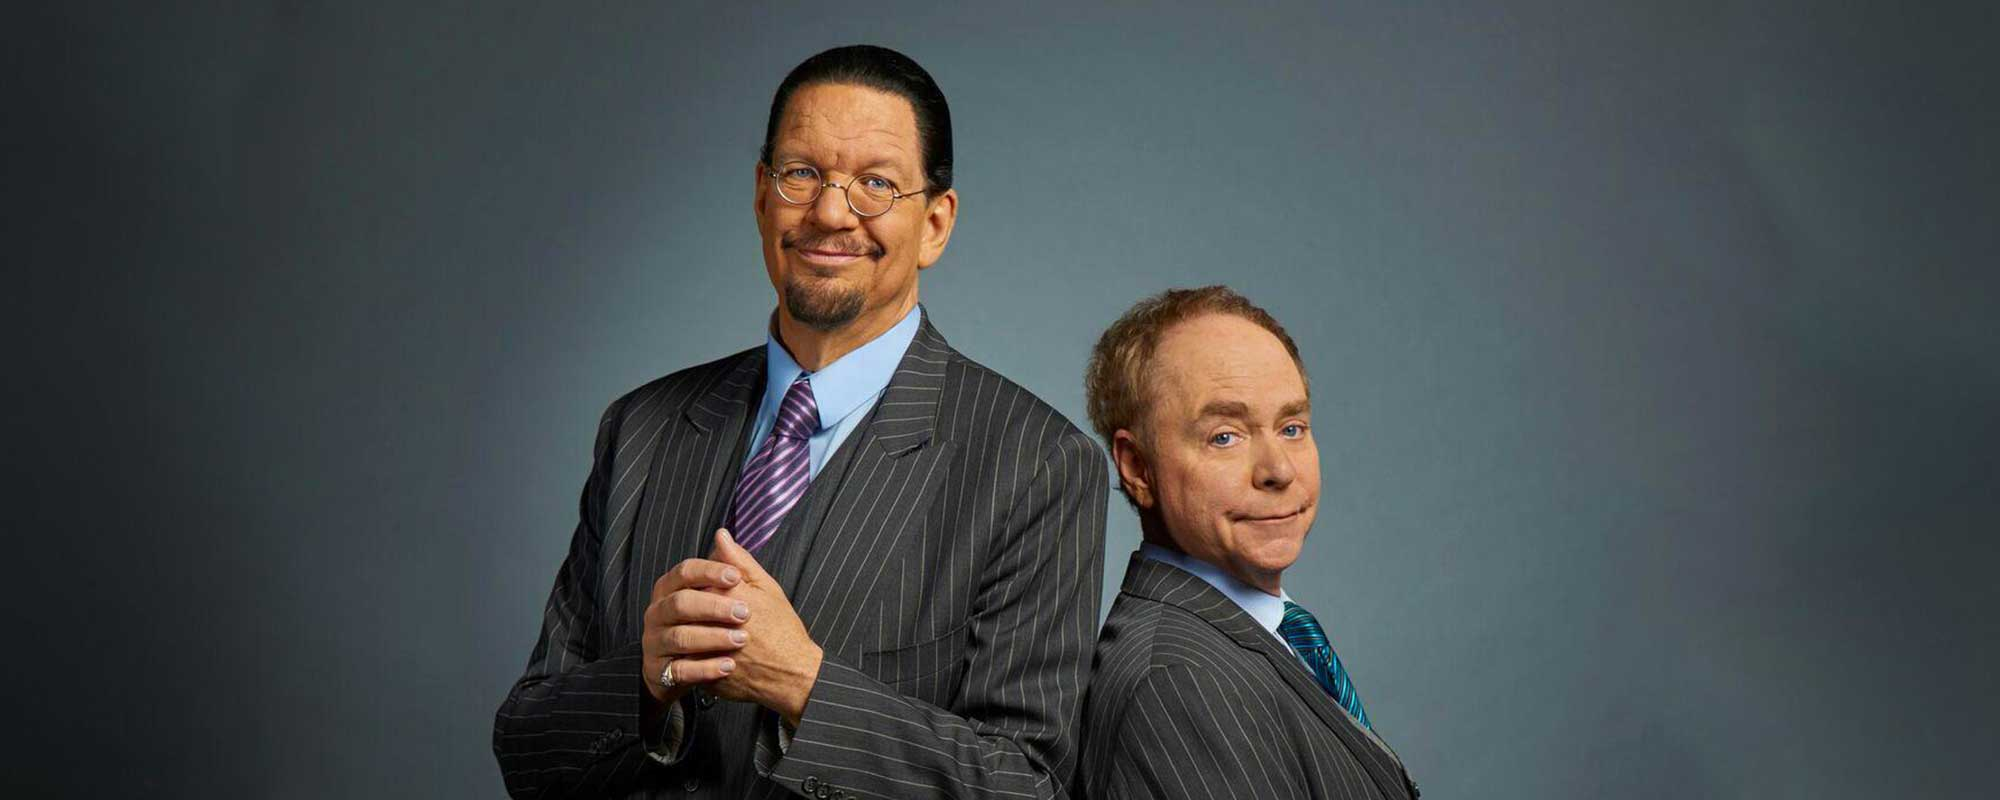 Penn Teller Show Las Vegas Tickets Reviews Vegas Com